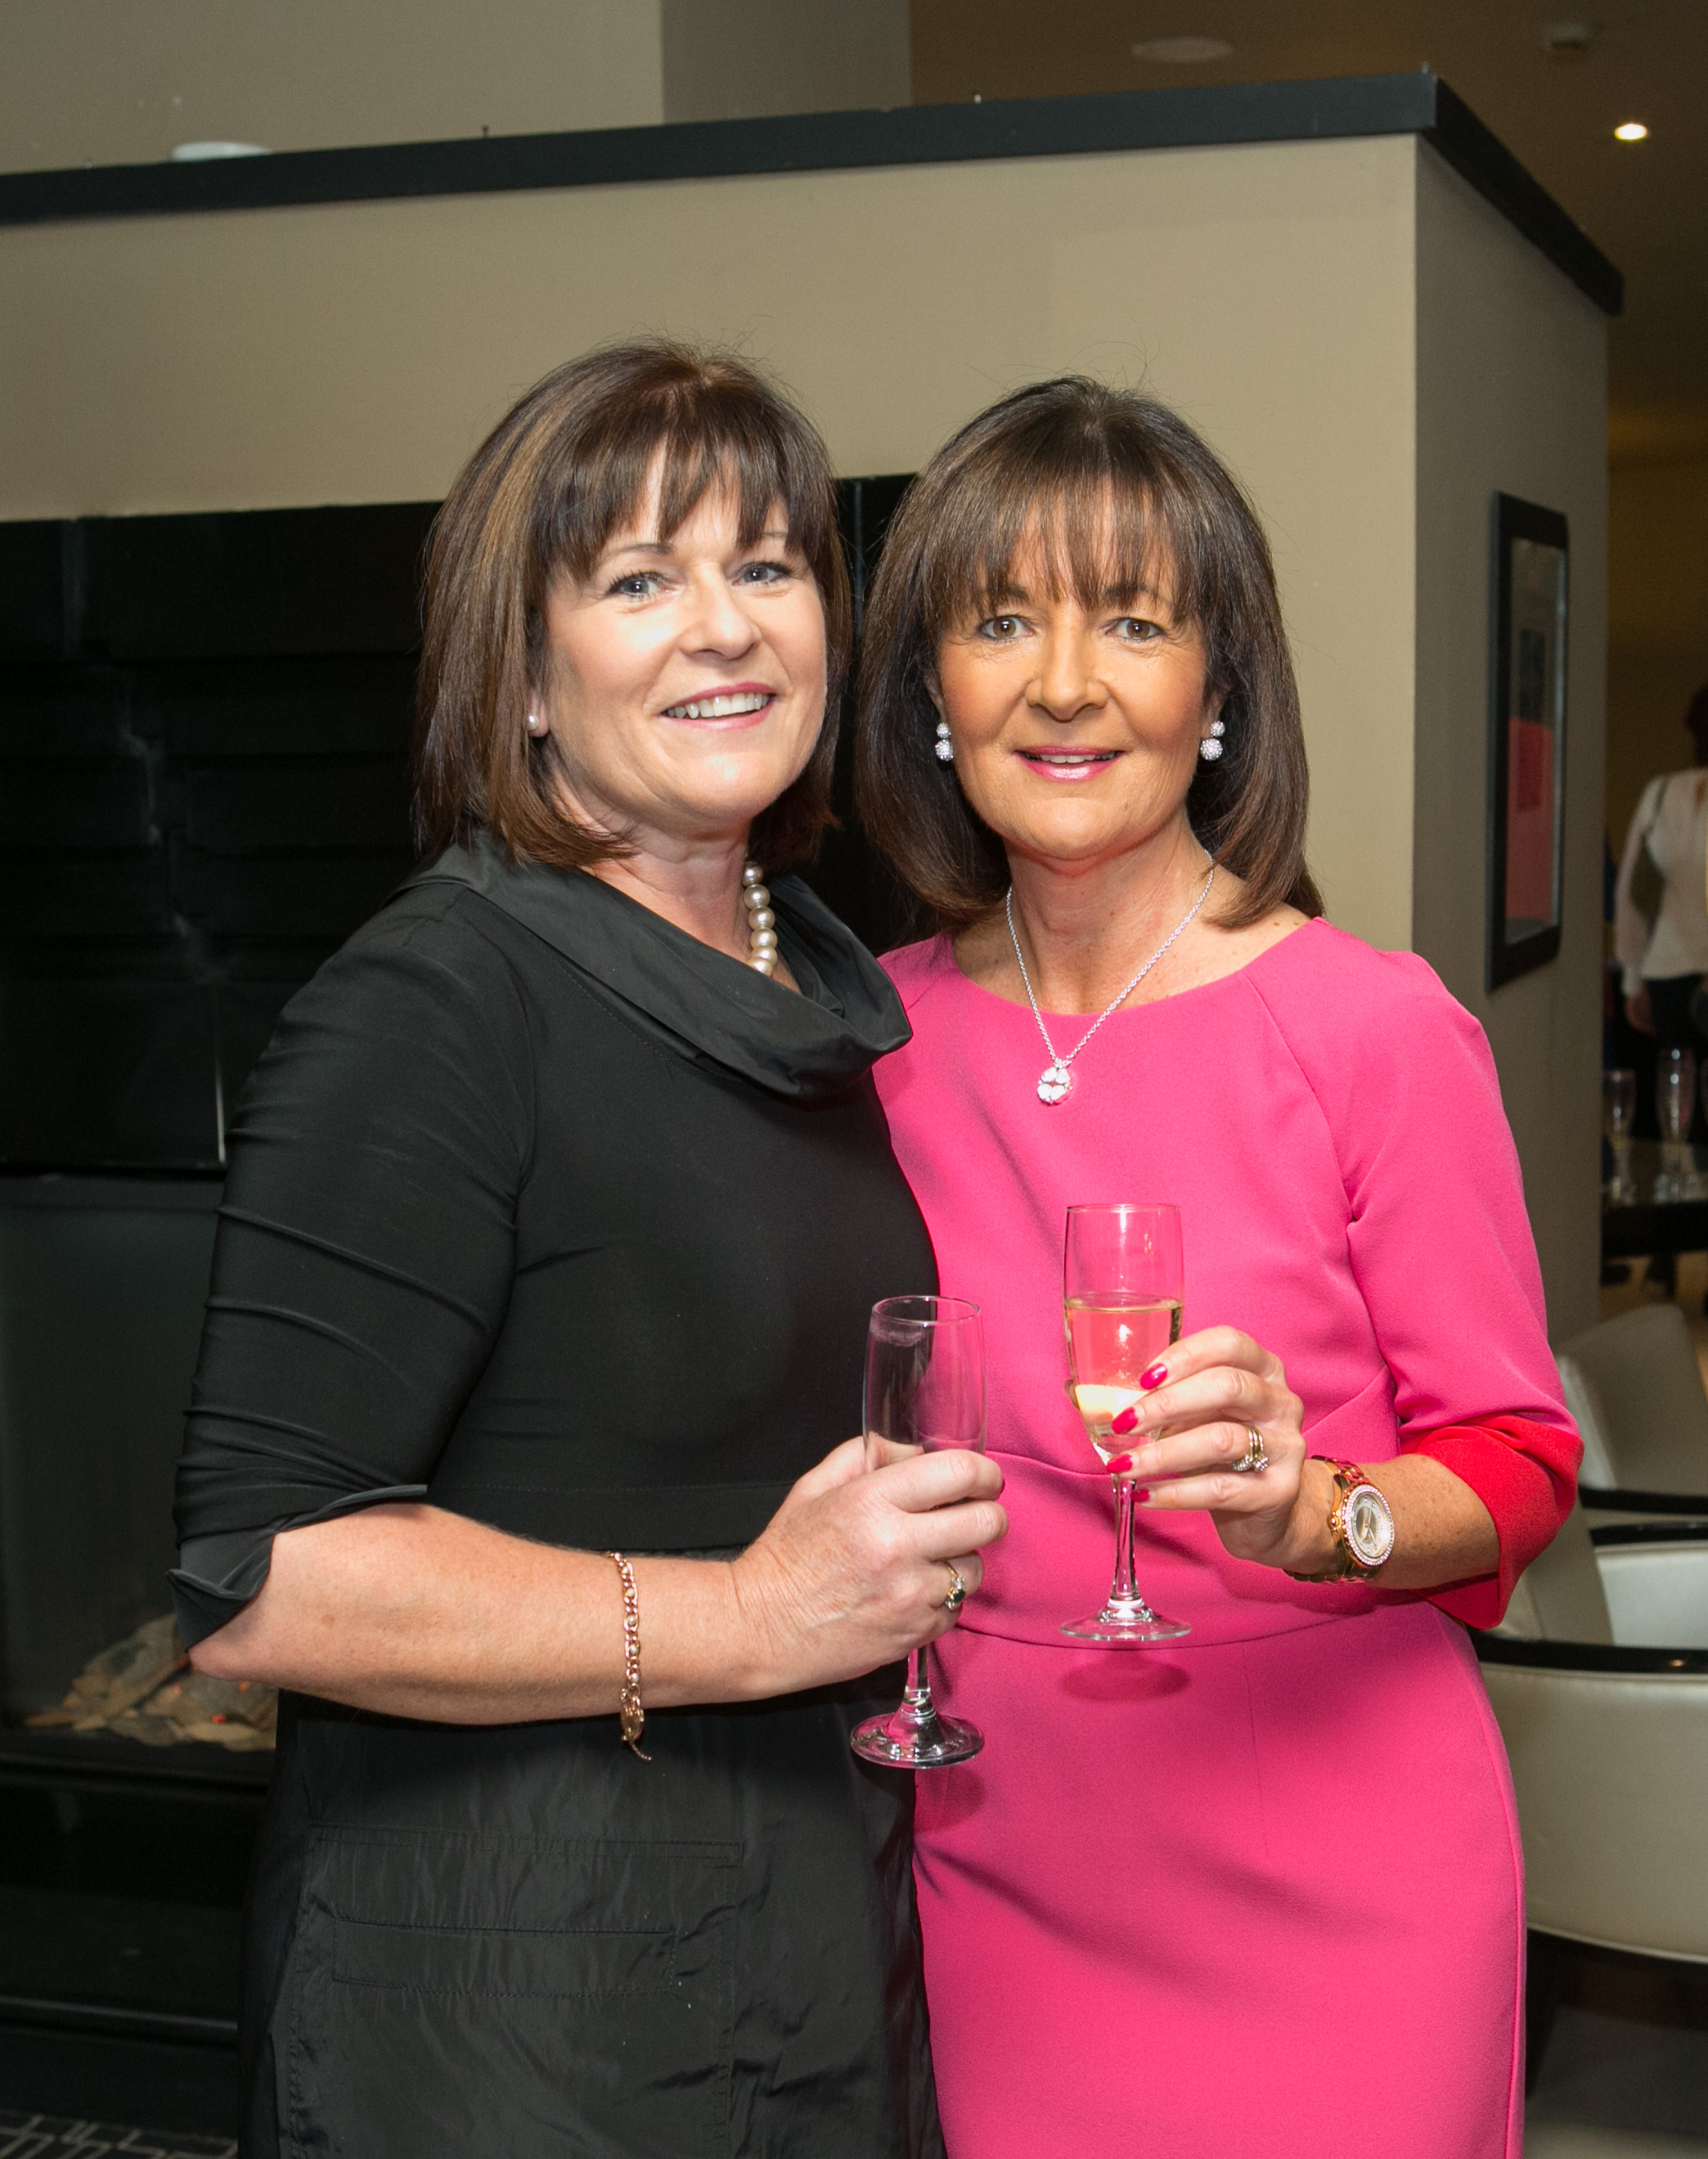 Gina McAuliffe and Dolores Keane, Blackrock at the Annual Aer Lingus Autumn Lunch in aid of Cork ARC Cancer Support House.